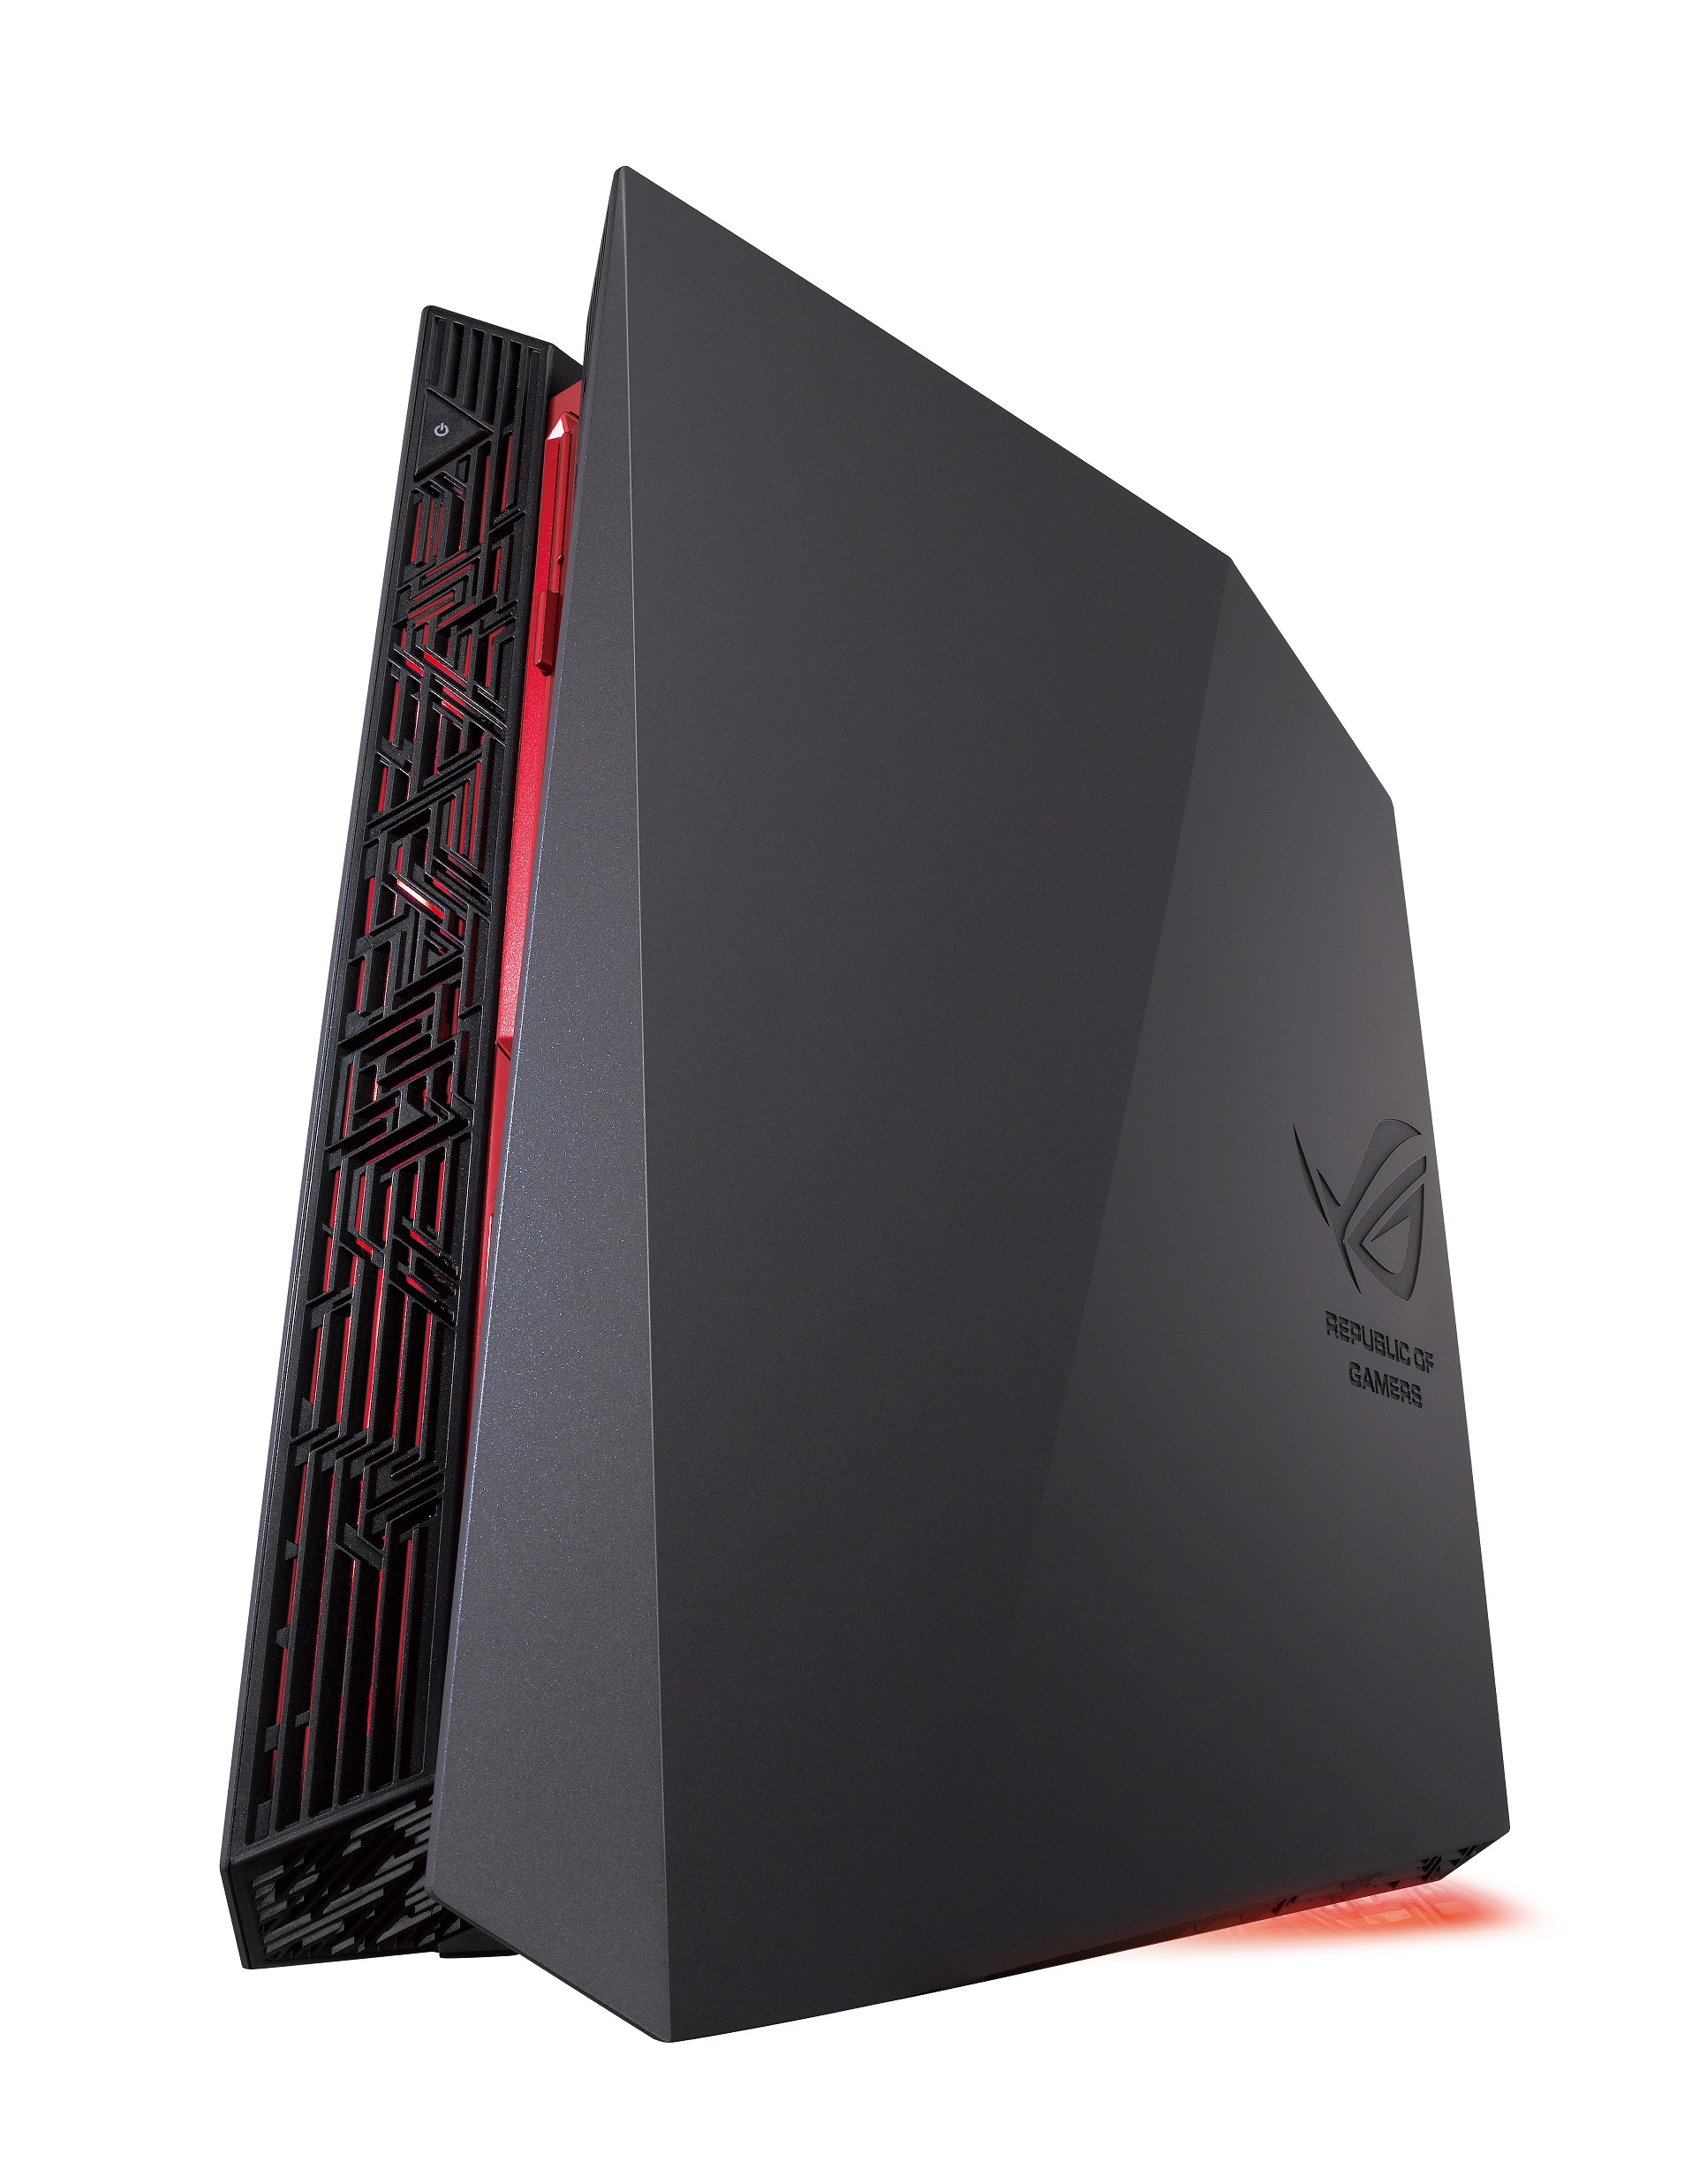 Asus Rog G20 Overview Edge Up